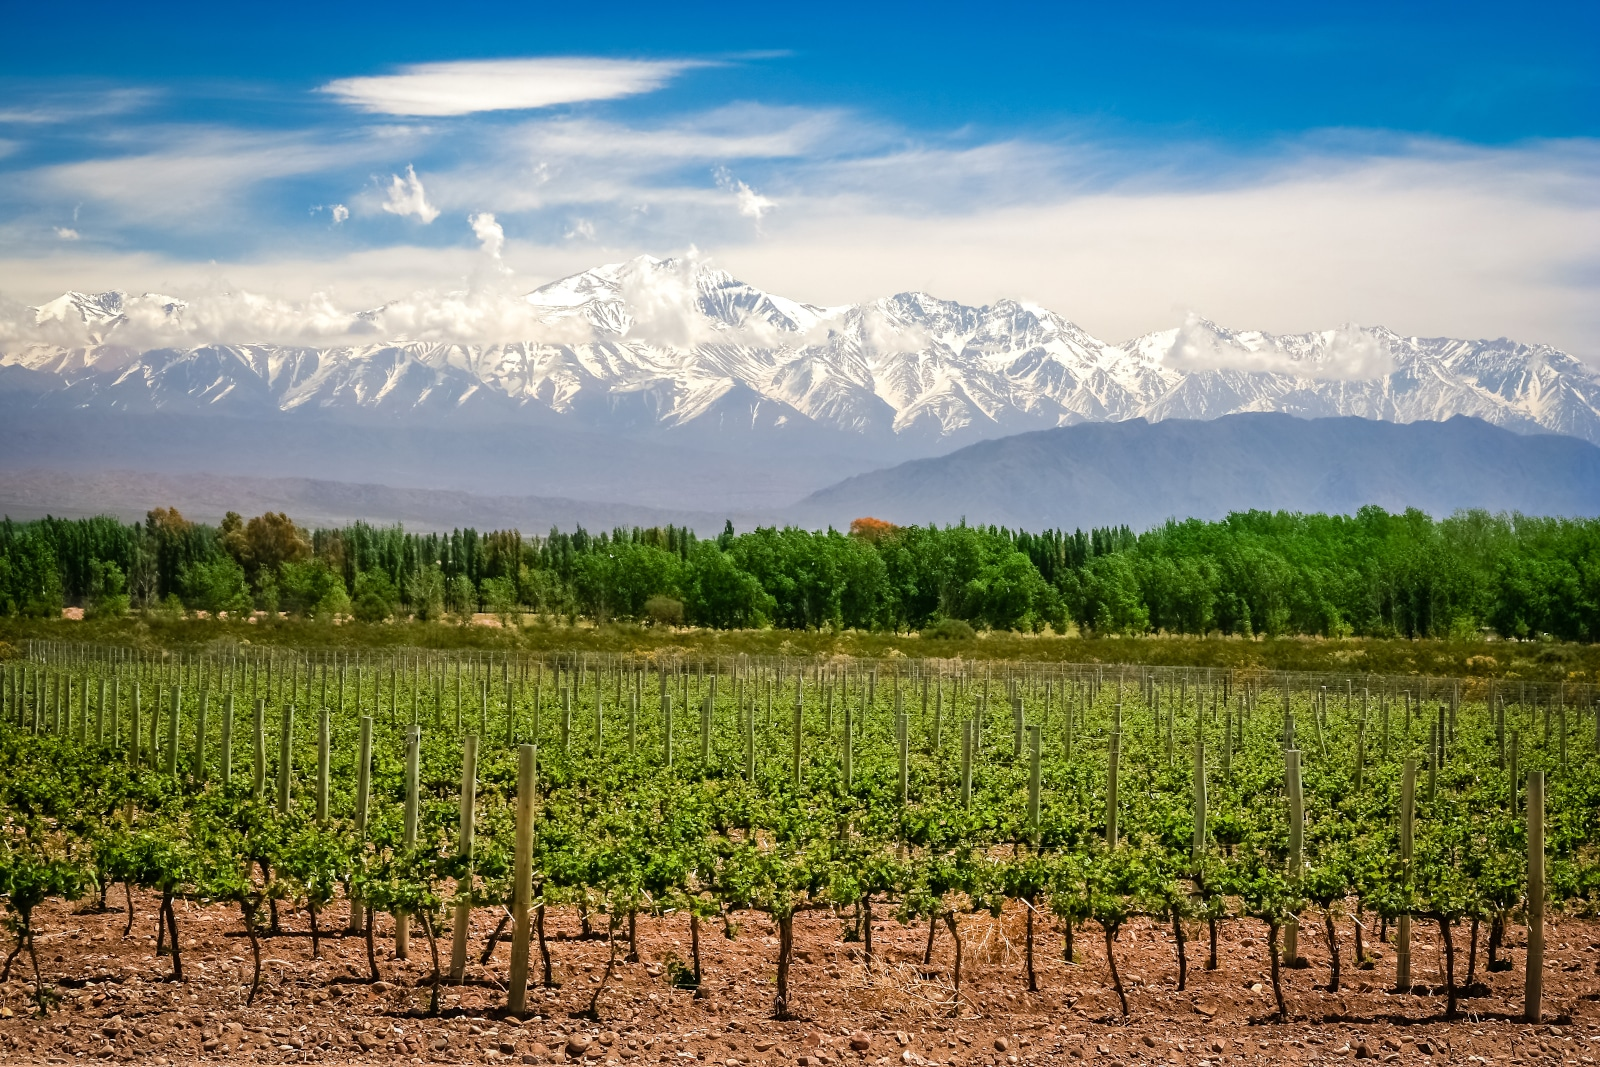 Where Does Malbec Come From